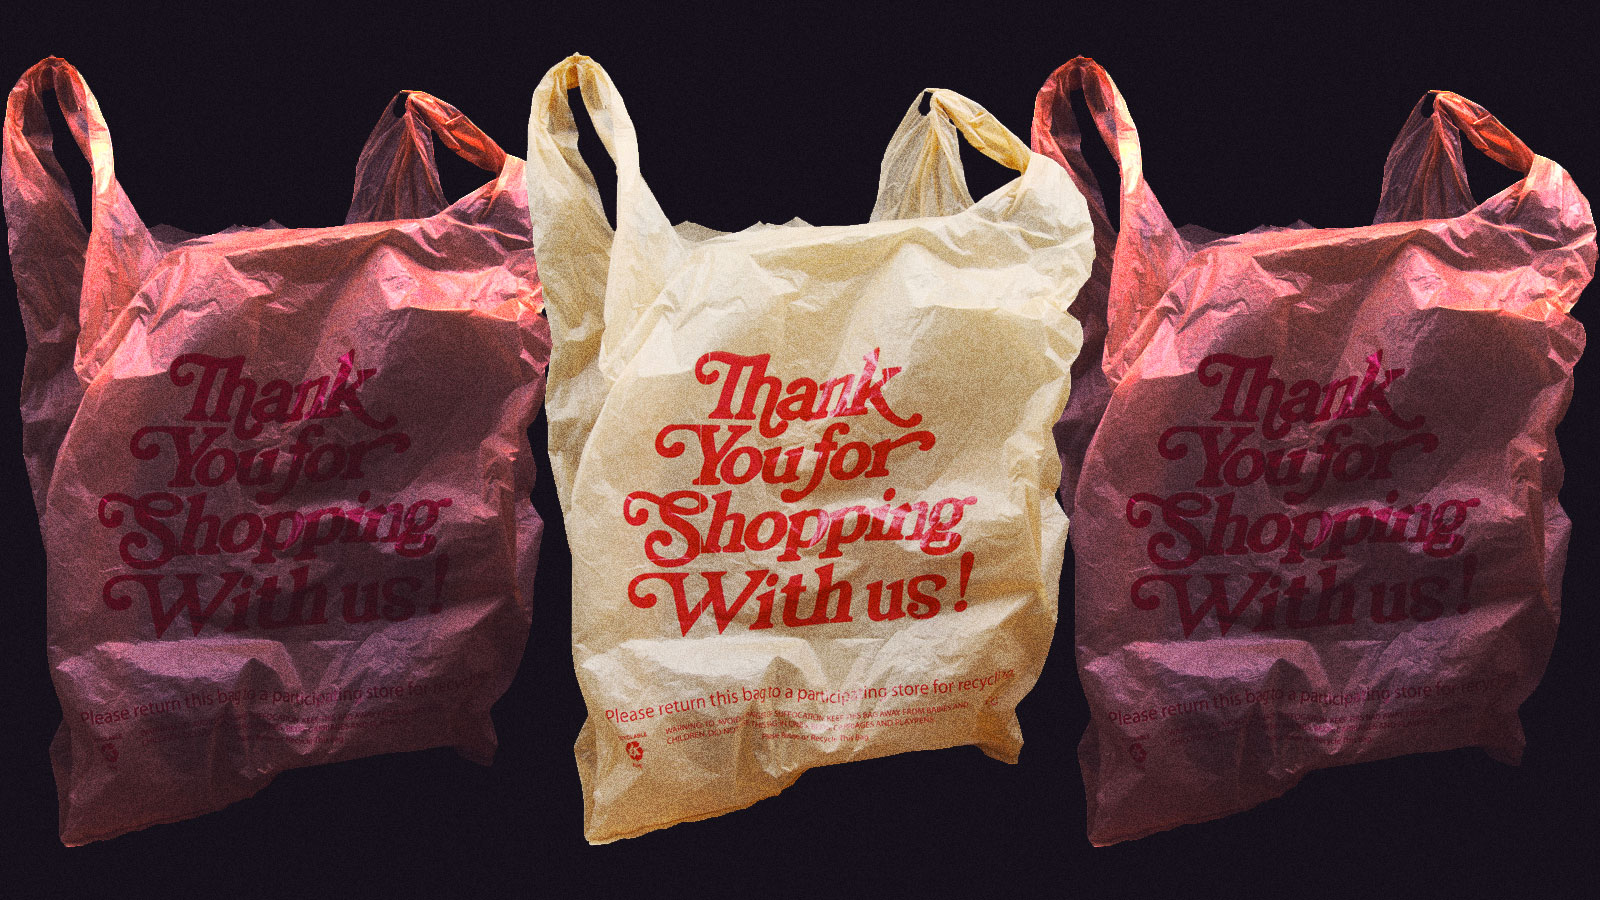 A row of plastic bags that say